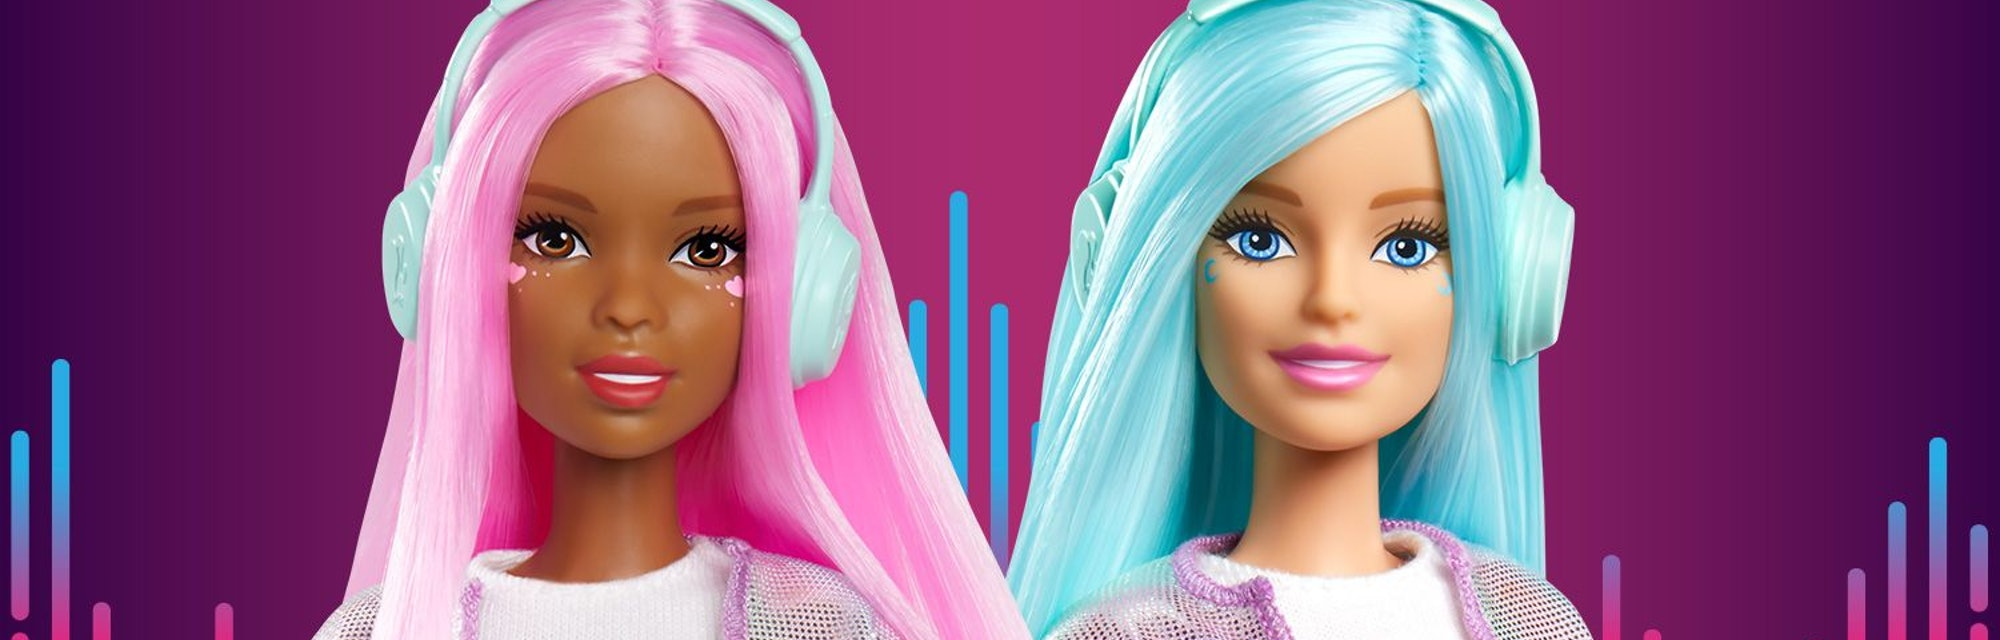 Barbie Career of the Year doll is Music Producer Barbie.